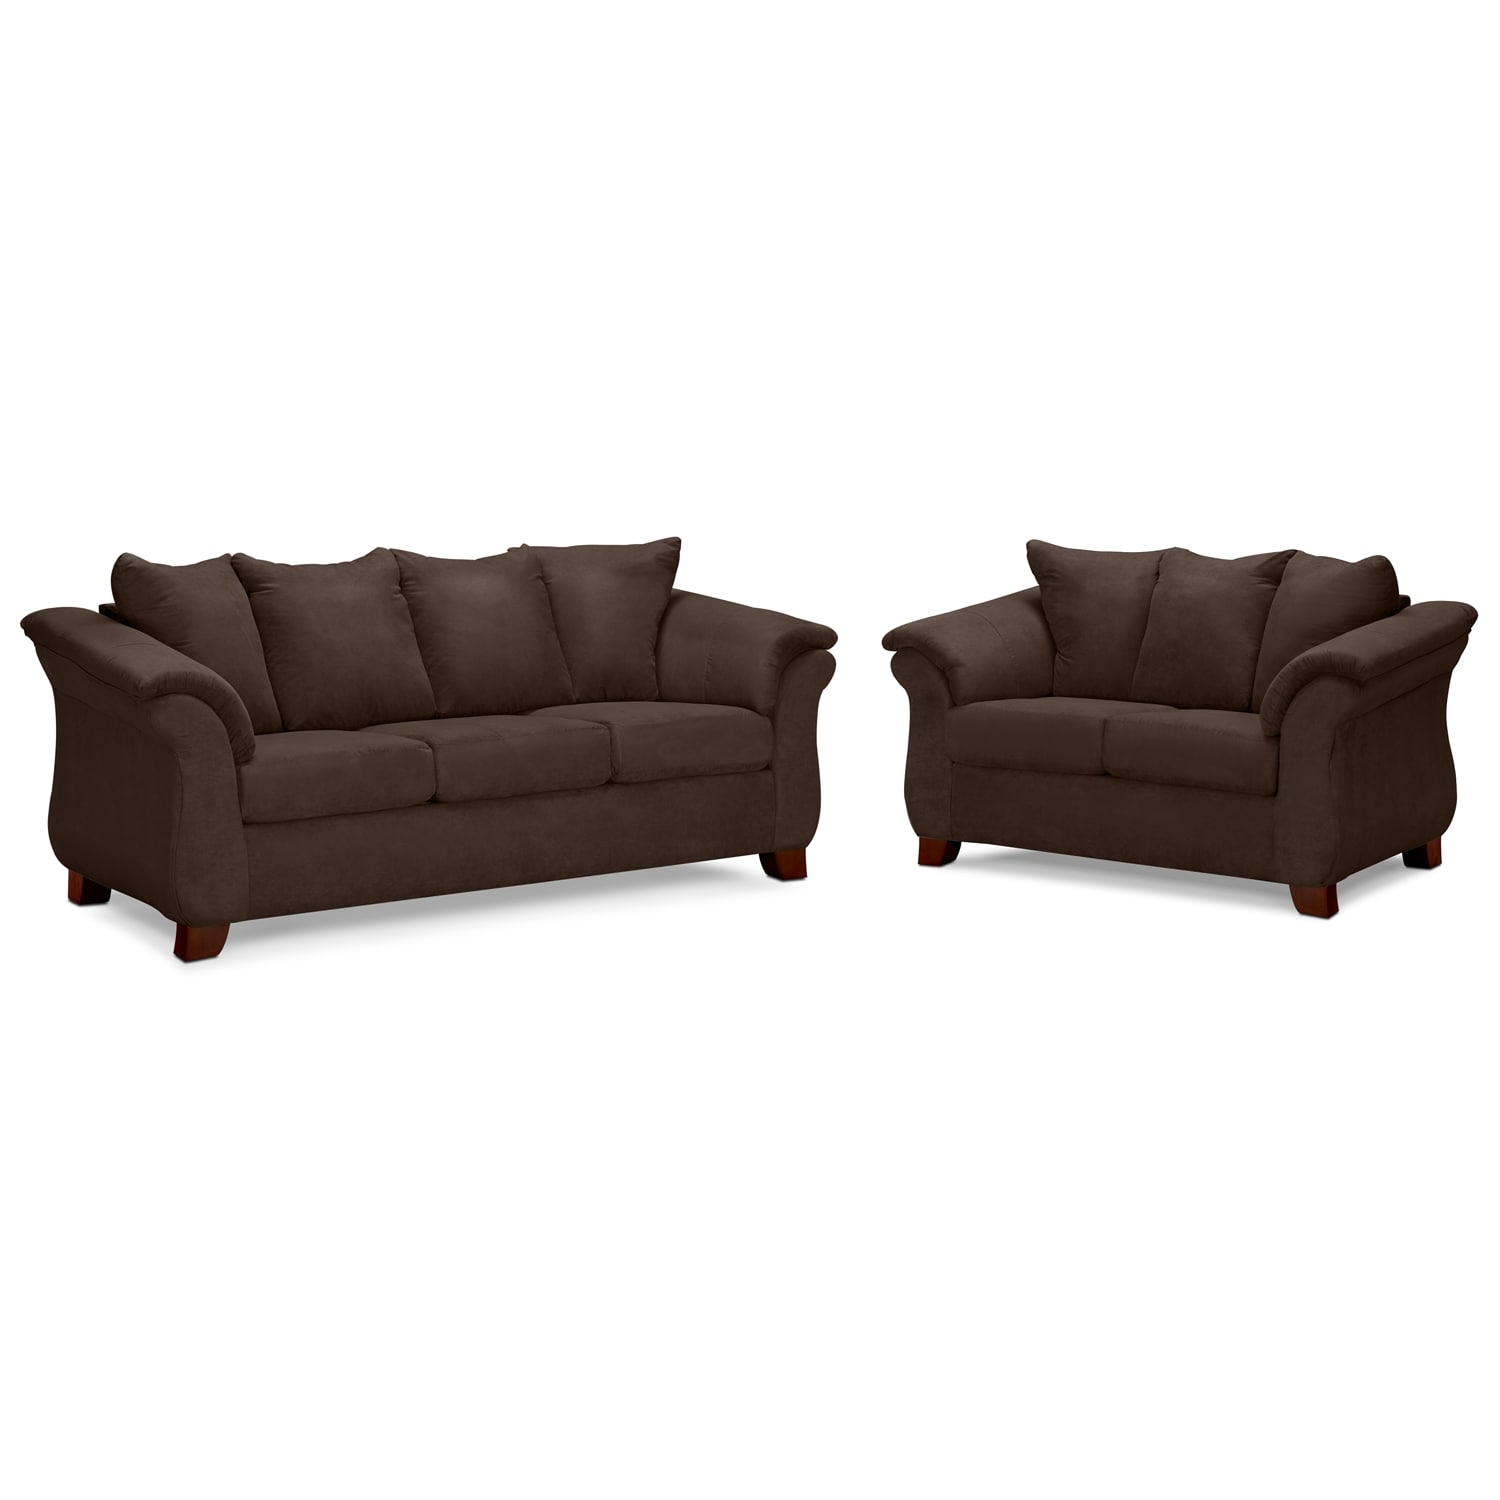 Living Room Furniture - Adrian Chocolate 2 Pc. Living Room